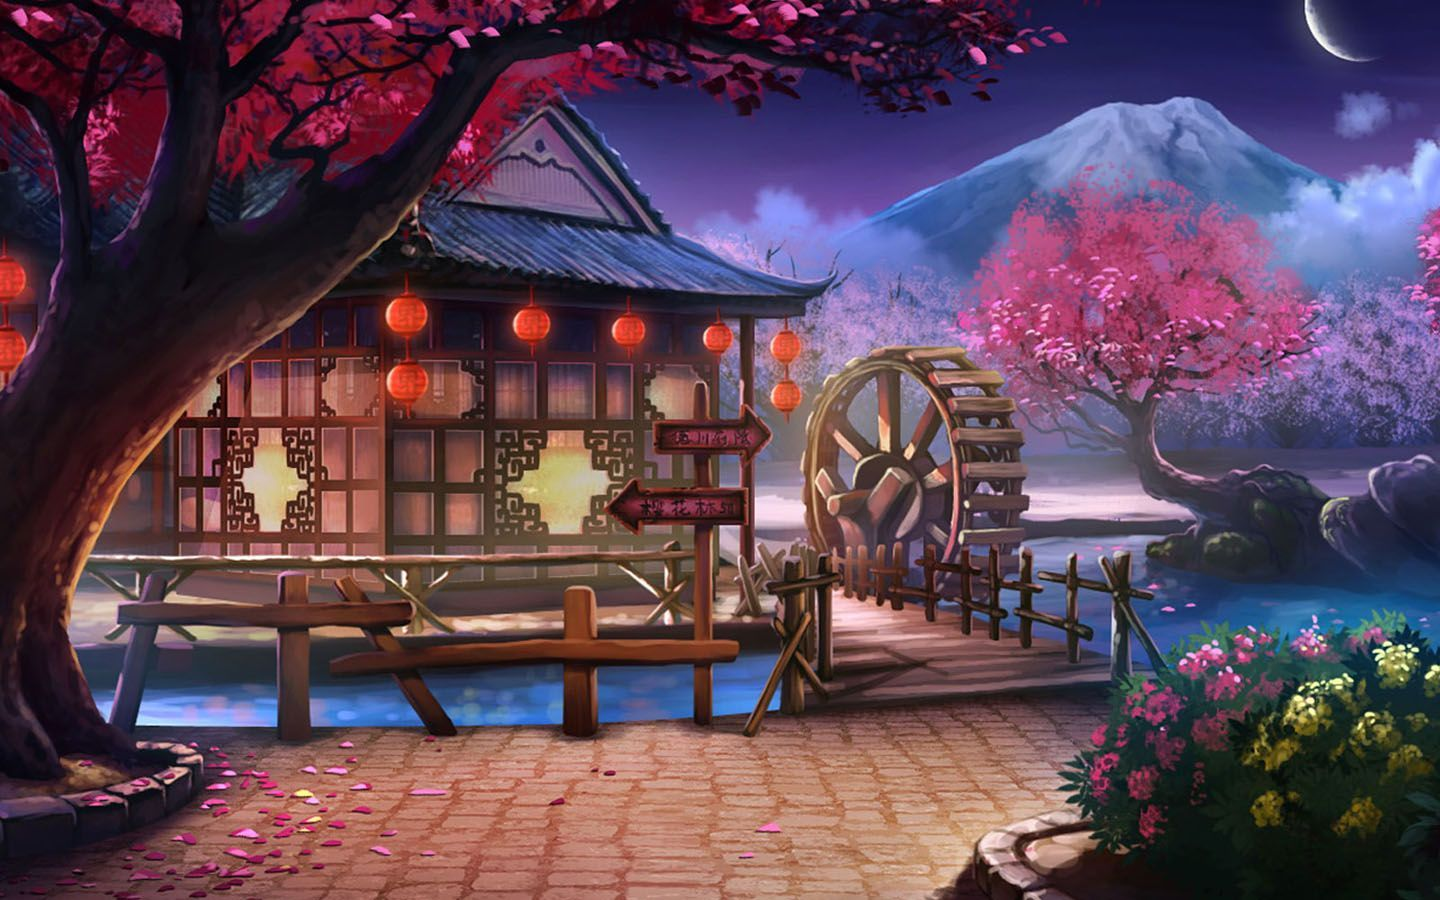 Anime Unknown Landscape Wallpaper Landscapewallpaper Landscape Wallpaper Anime Places Anime Backgrounds Wallpapers